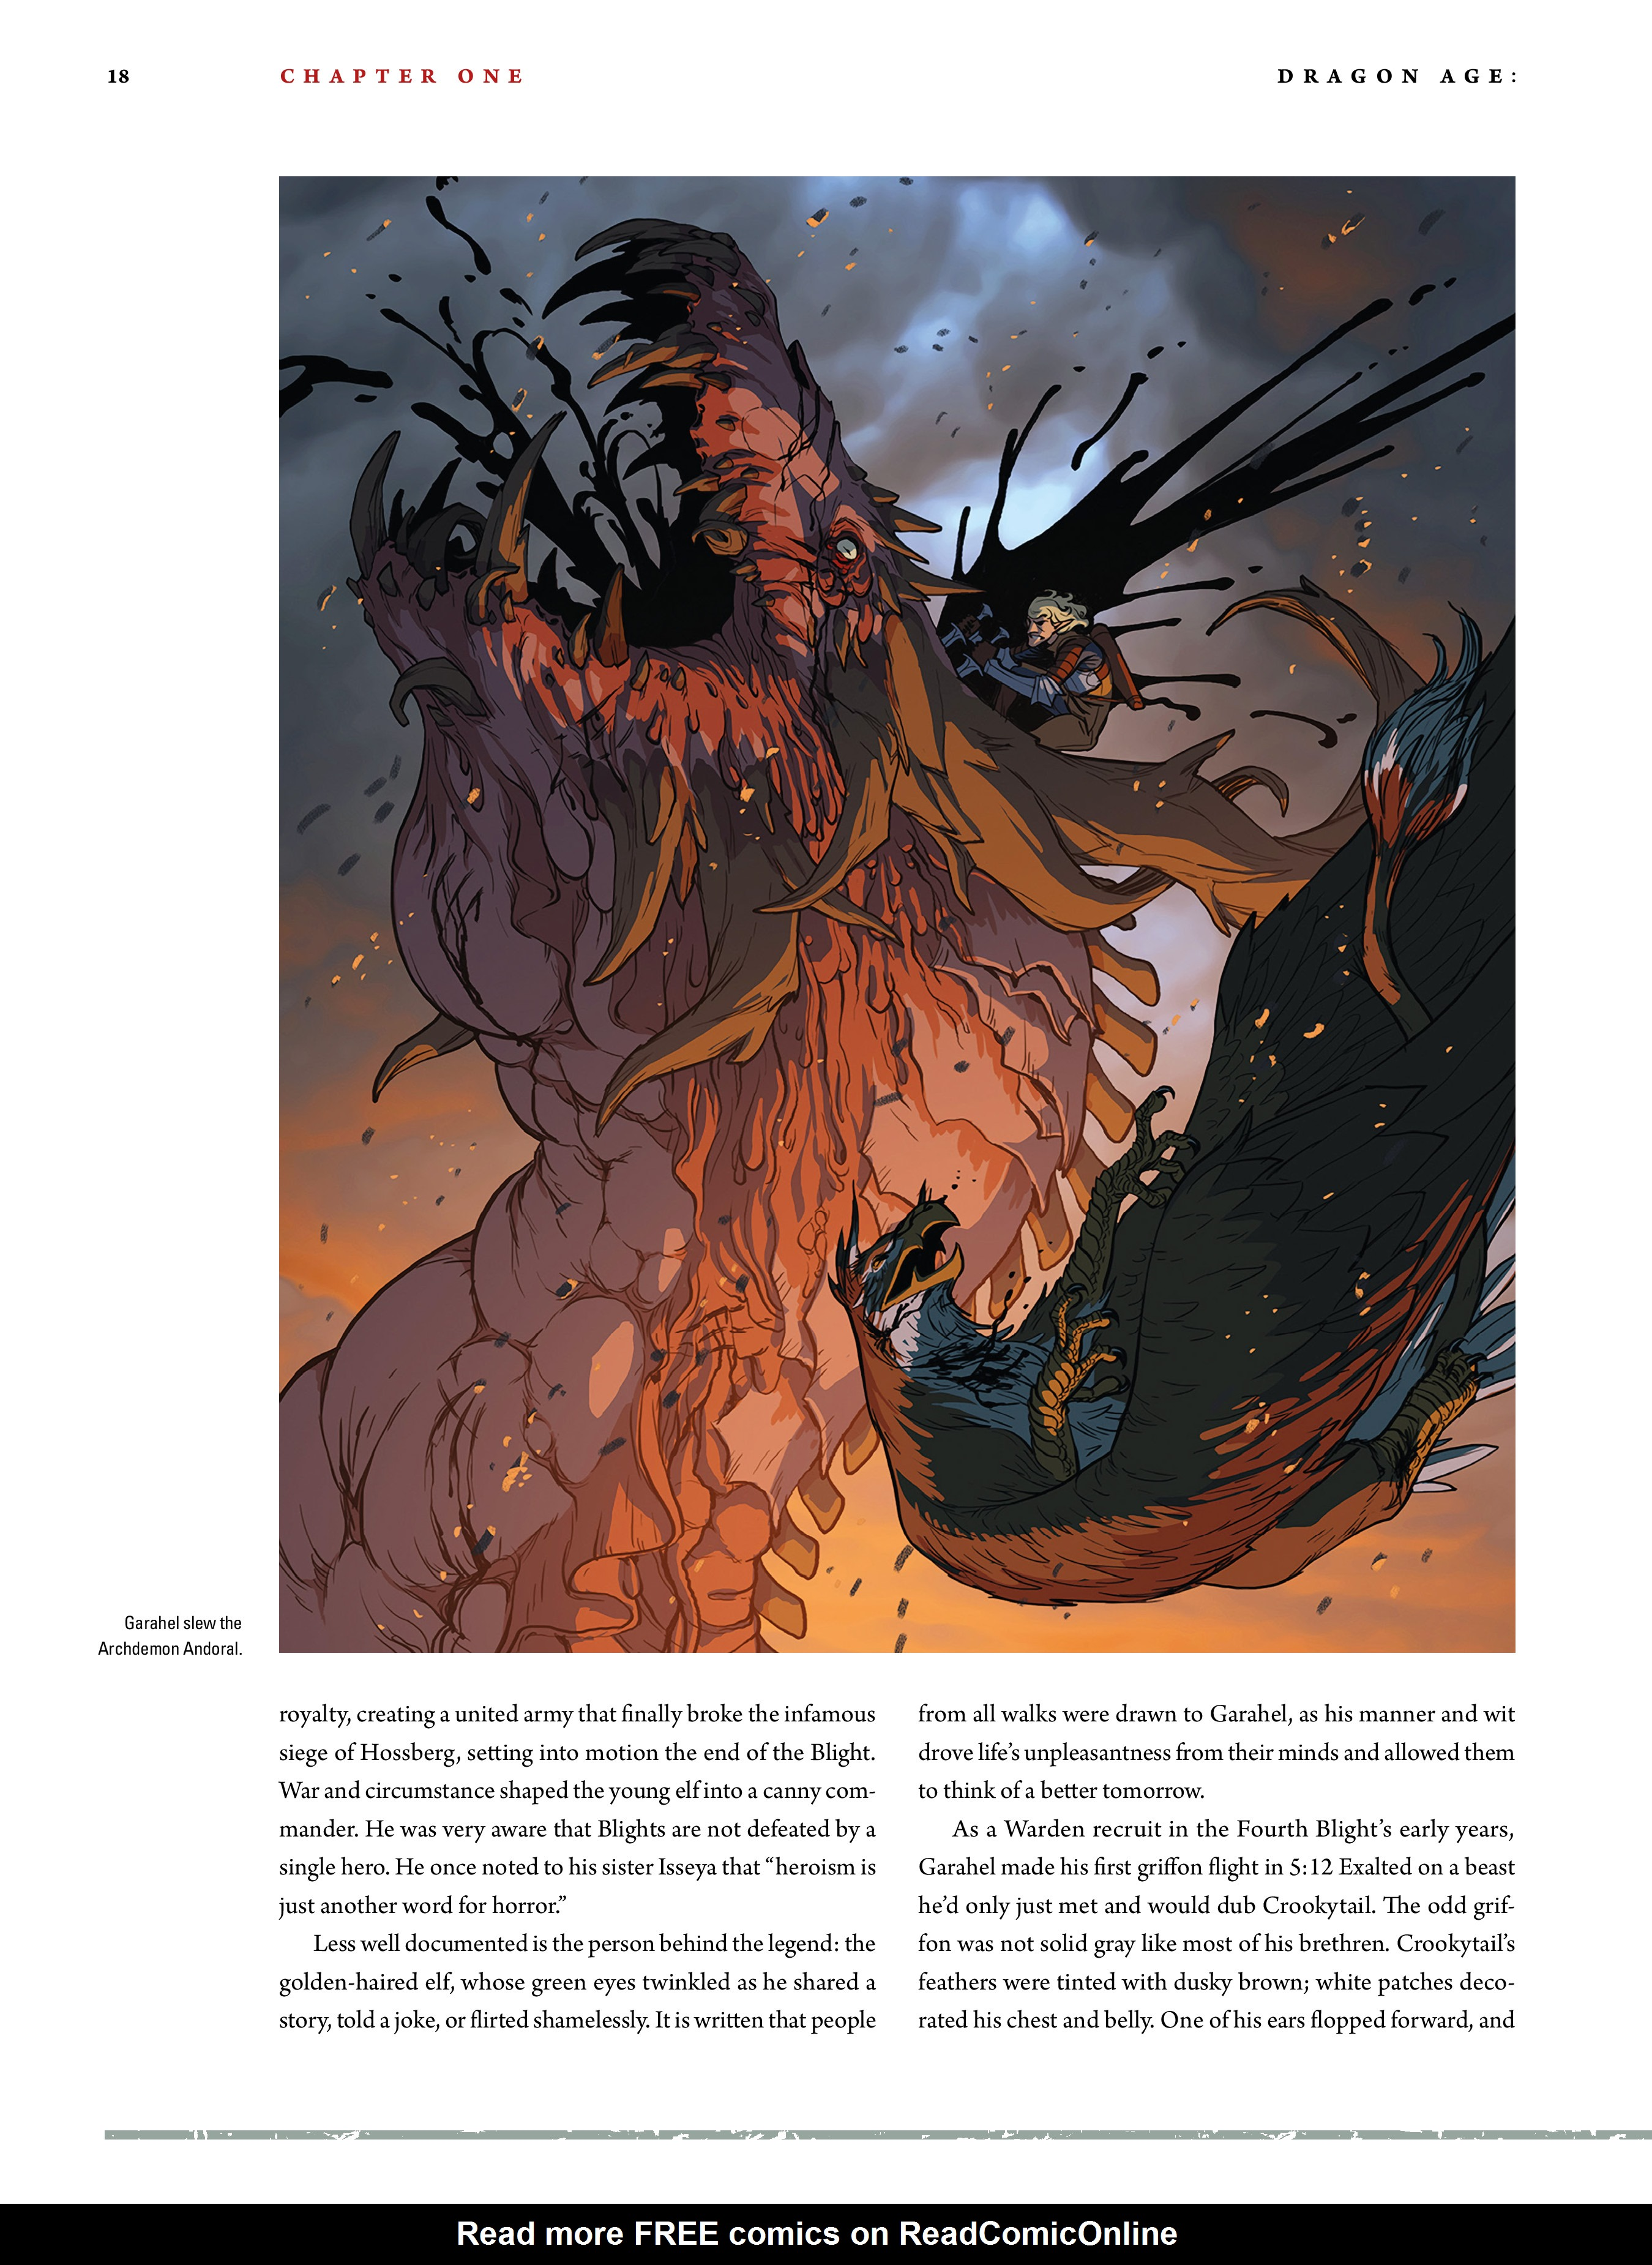 Read online Dragon Age: The World of Thedas comic -  Issue # TPB 2 - 16